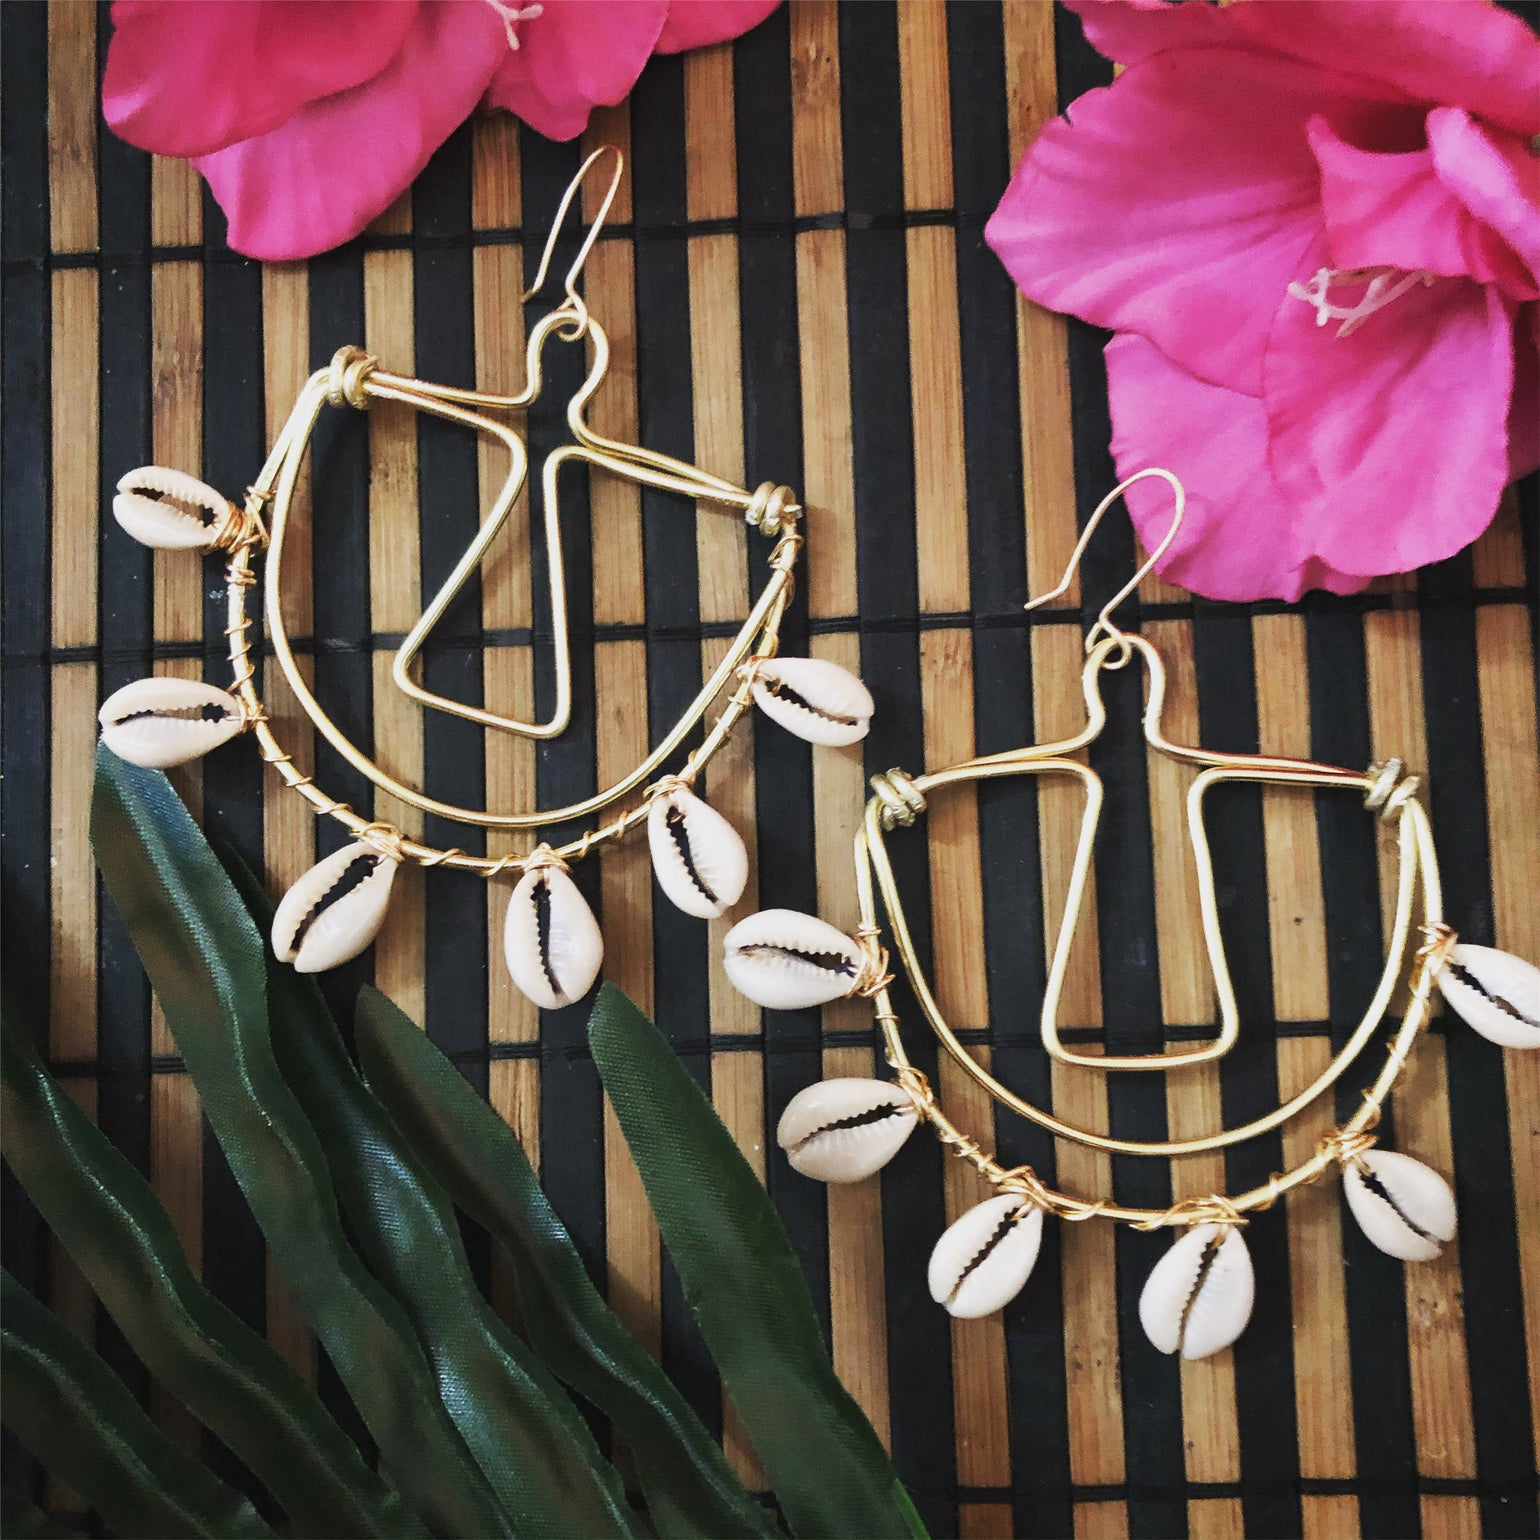 Image of Goddess of Balance Statement earrings